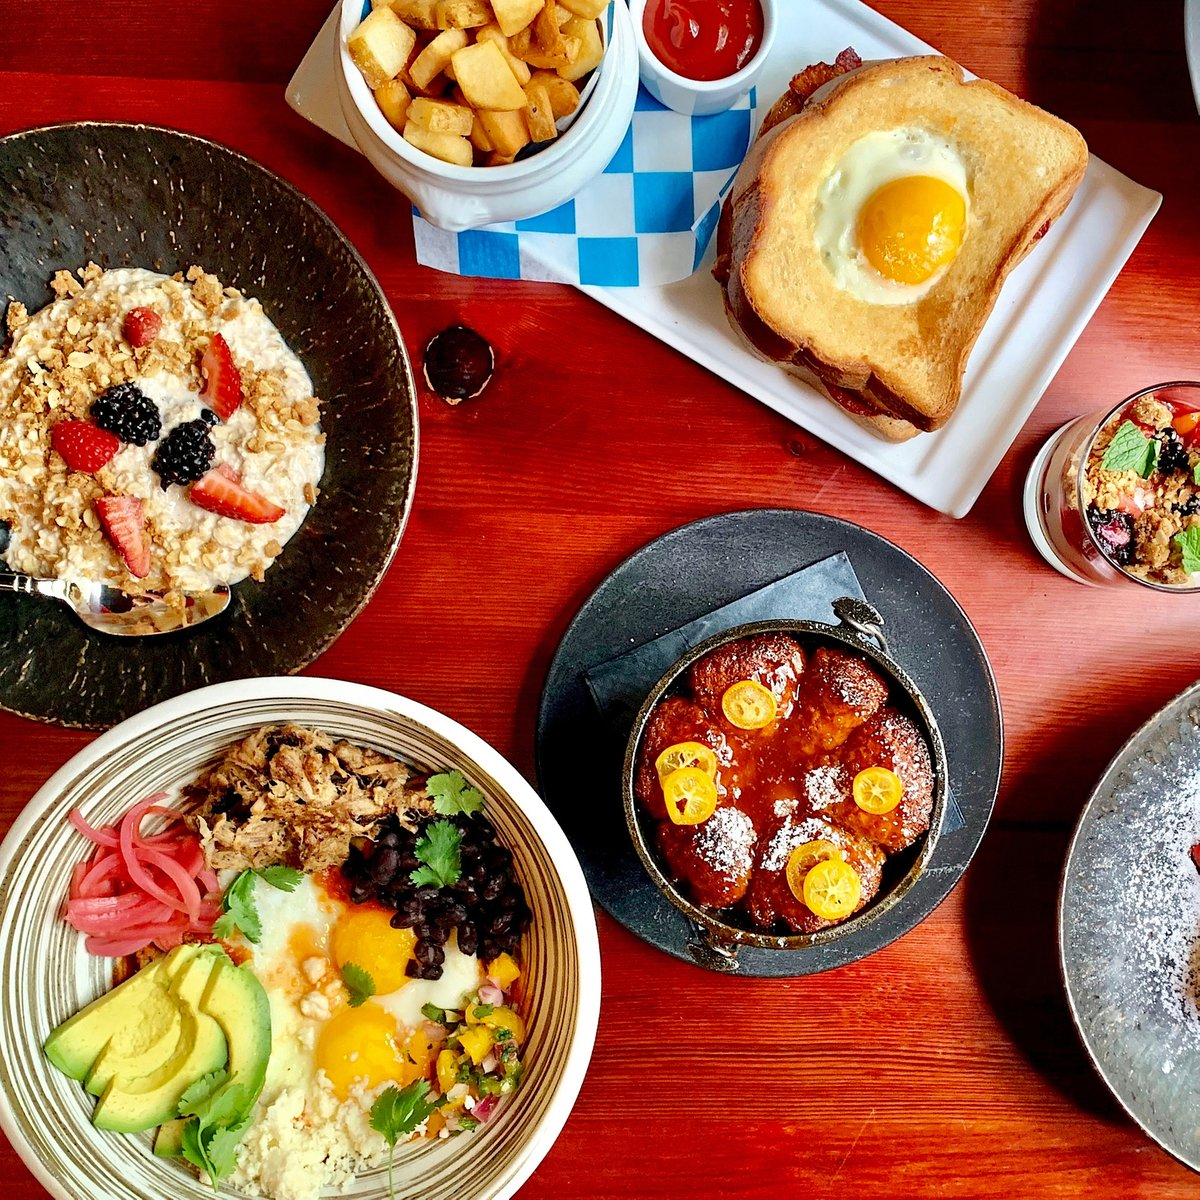 What does your #sundaybrunch table look like? Ours has the perfect balance of savory and sweet #SwiftsAttic #EatSwiftly #farmtotable #atxbrunch #atxbrunches #theaustinot #atx #austin360eats #365thingsaustin #do512 #atxfood #eateratx #opentable #trueaustin #eeeeeats #atxfoodie pic.twitter.com/TW4qB4Xy6T